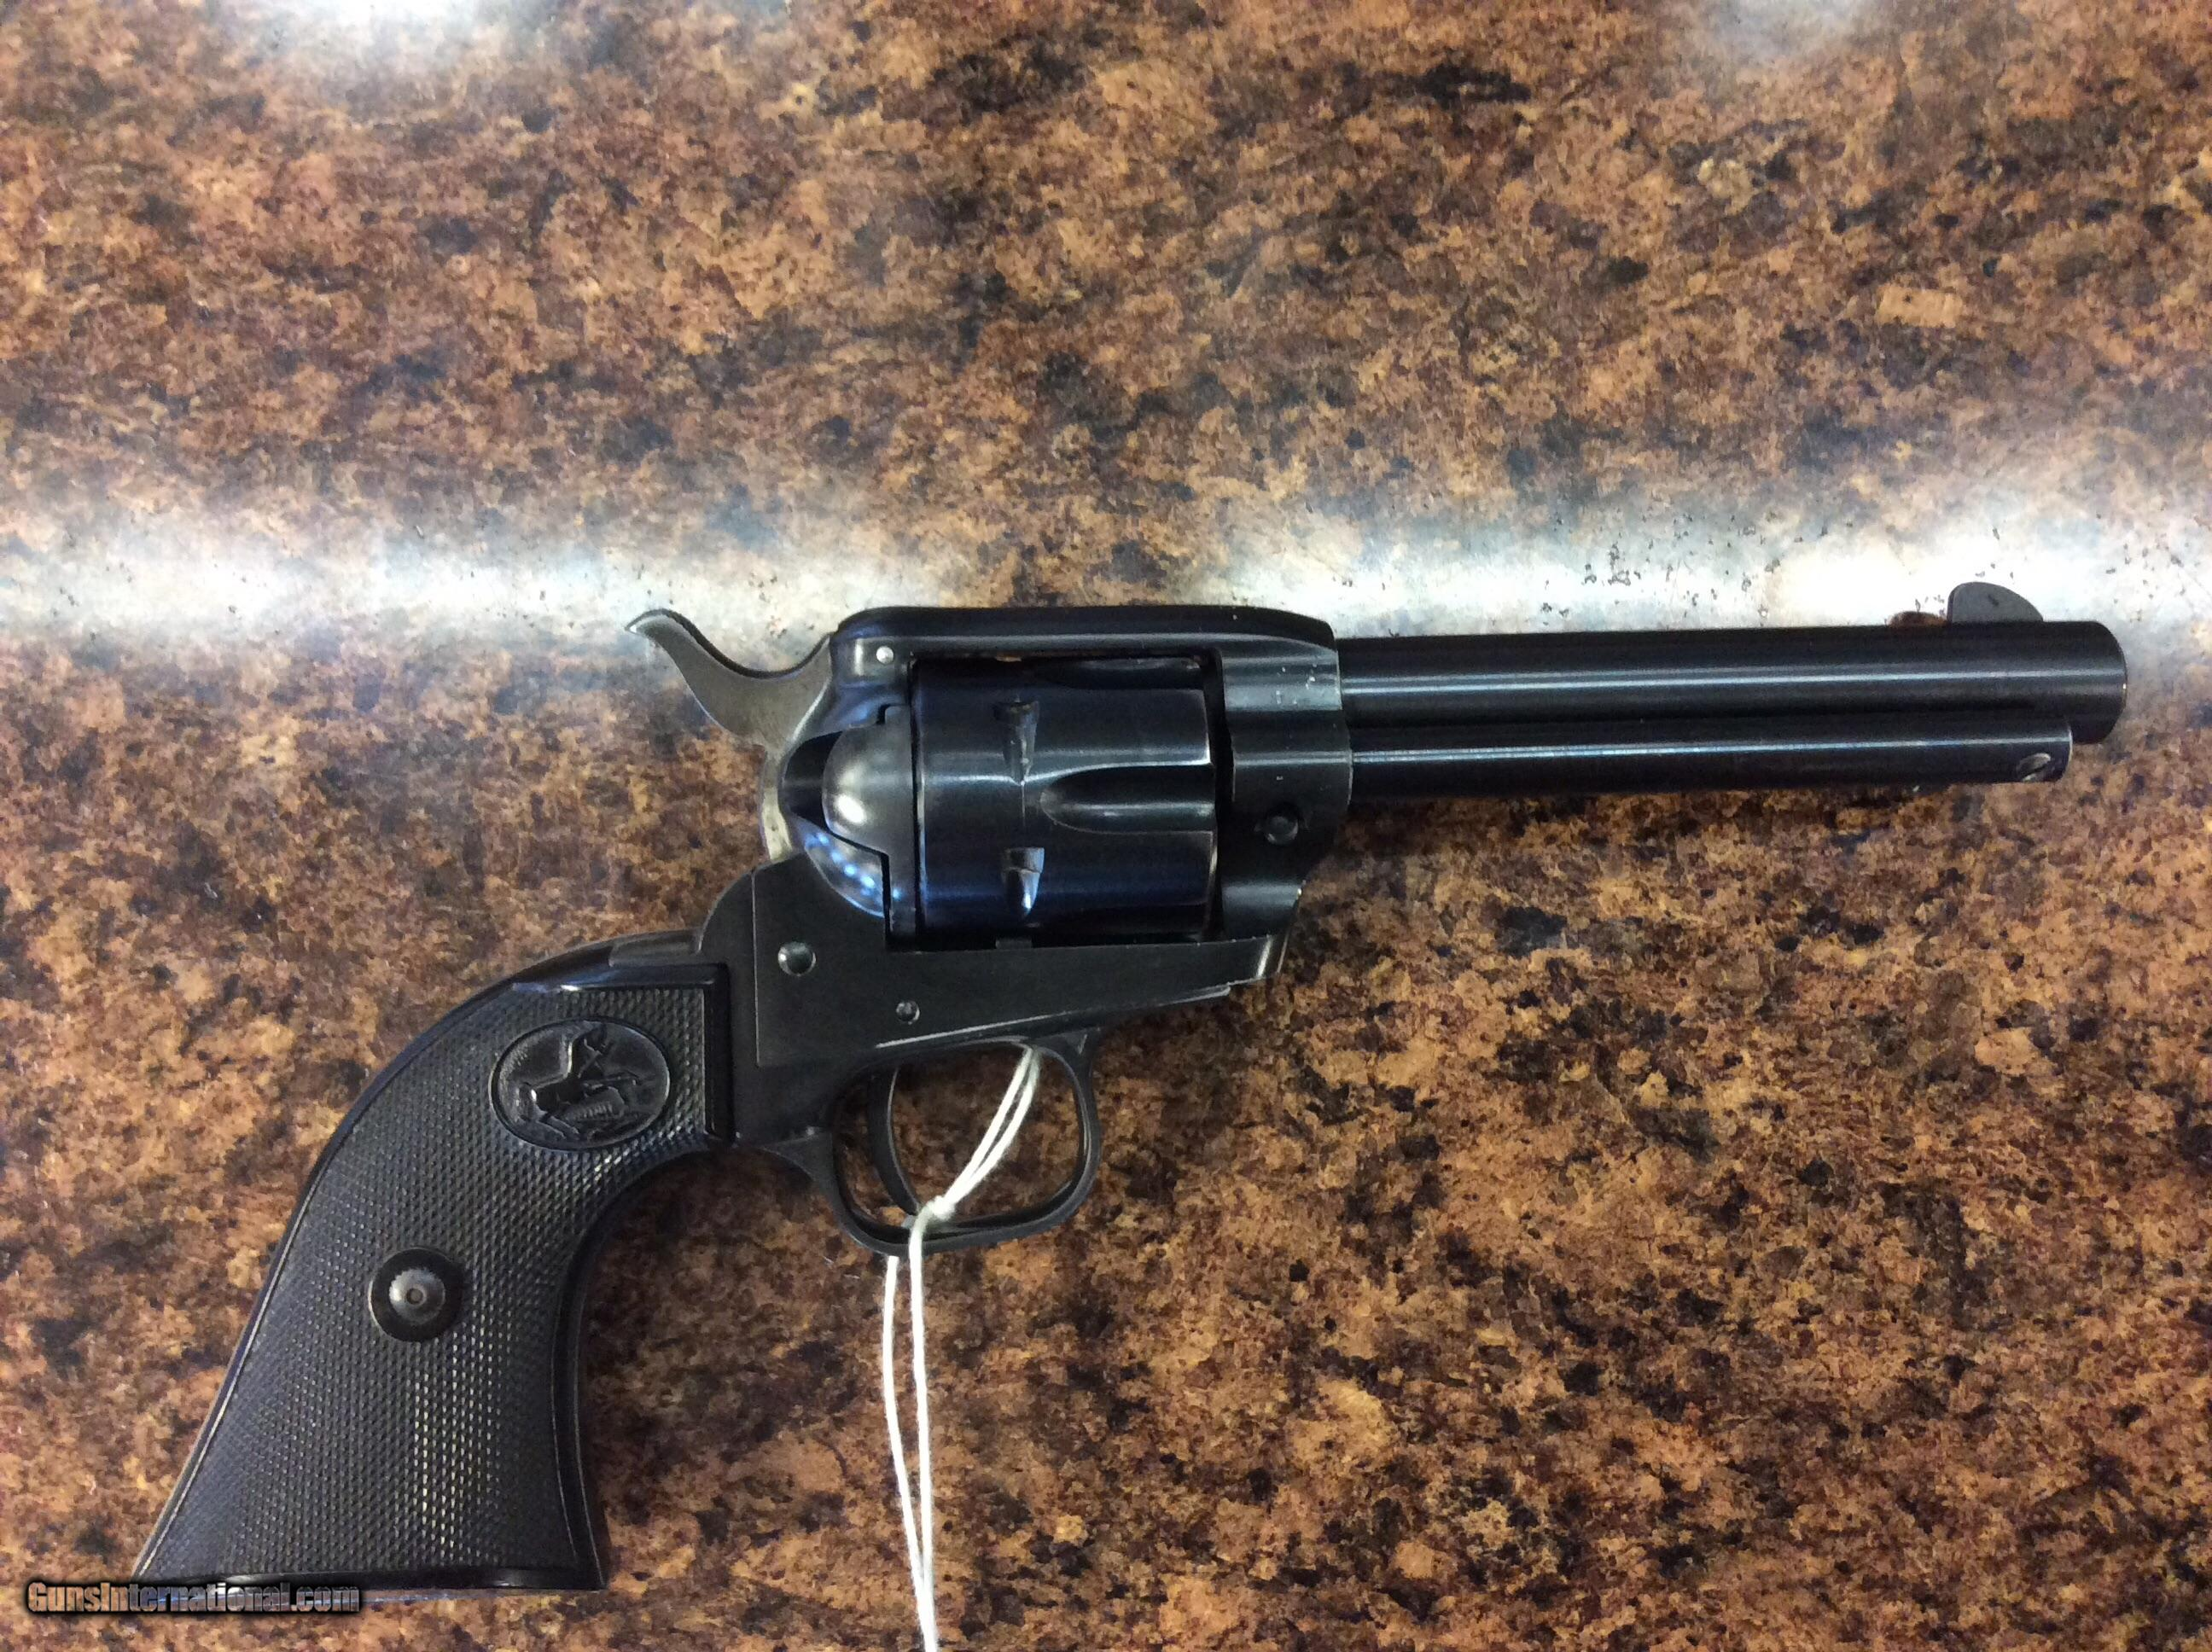 Guns for Sale - Revolvers For Sale - Item 9484416